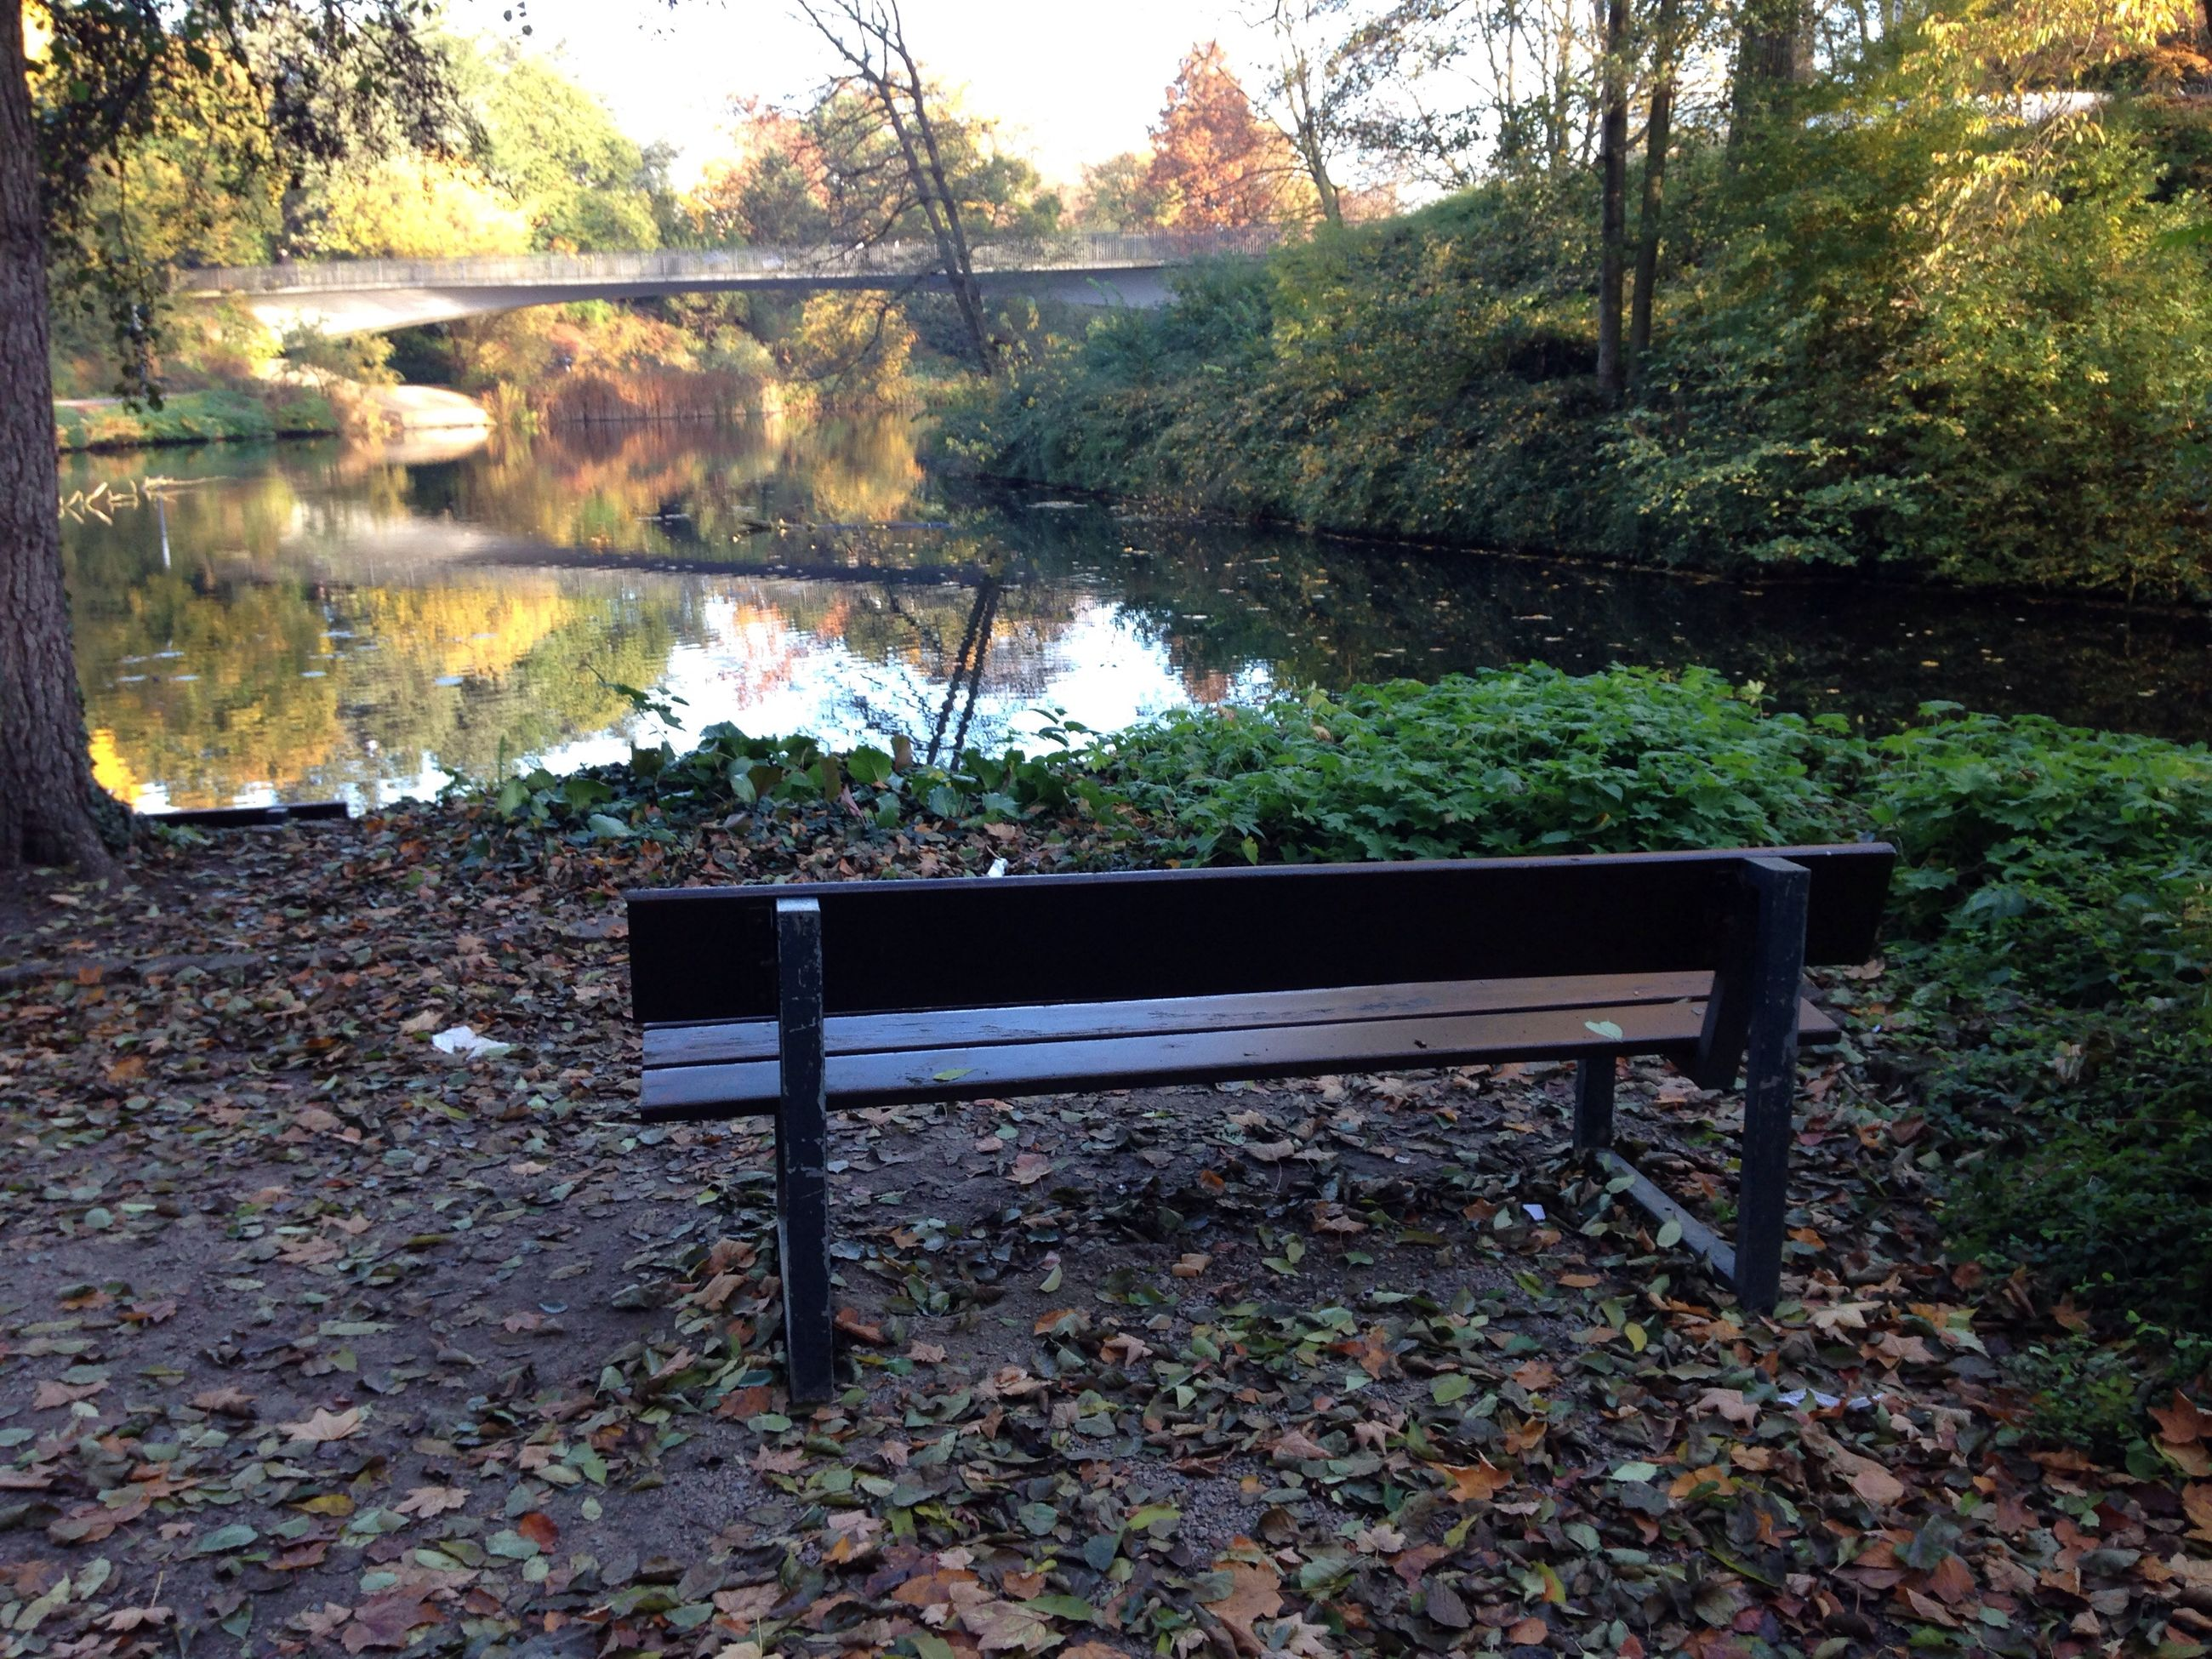 tree, tranquility, water, bench, abandoned, autumn, reflection, nature, absence, empty, leaf, day, lake, tranquil scene, no people, growth, outdoors, forest, plant, wood - material